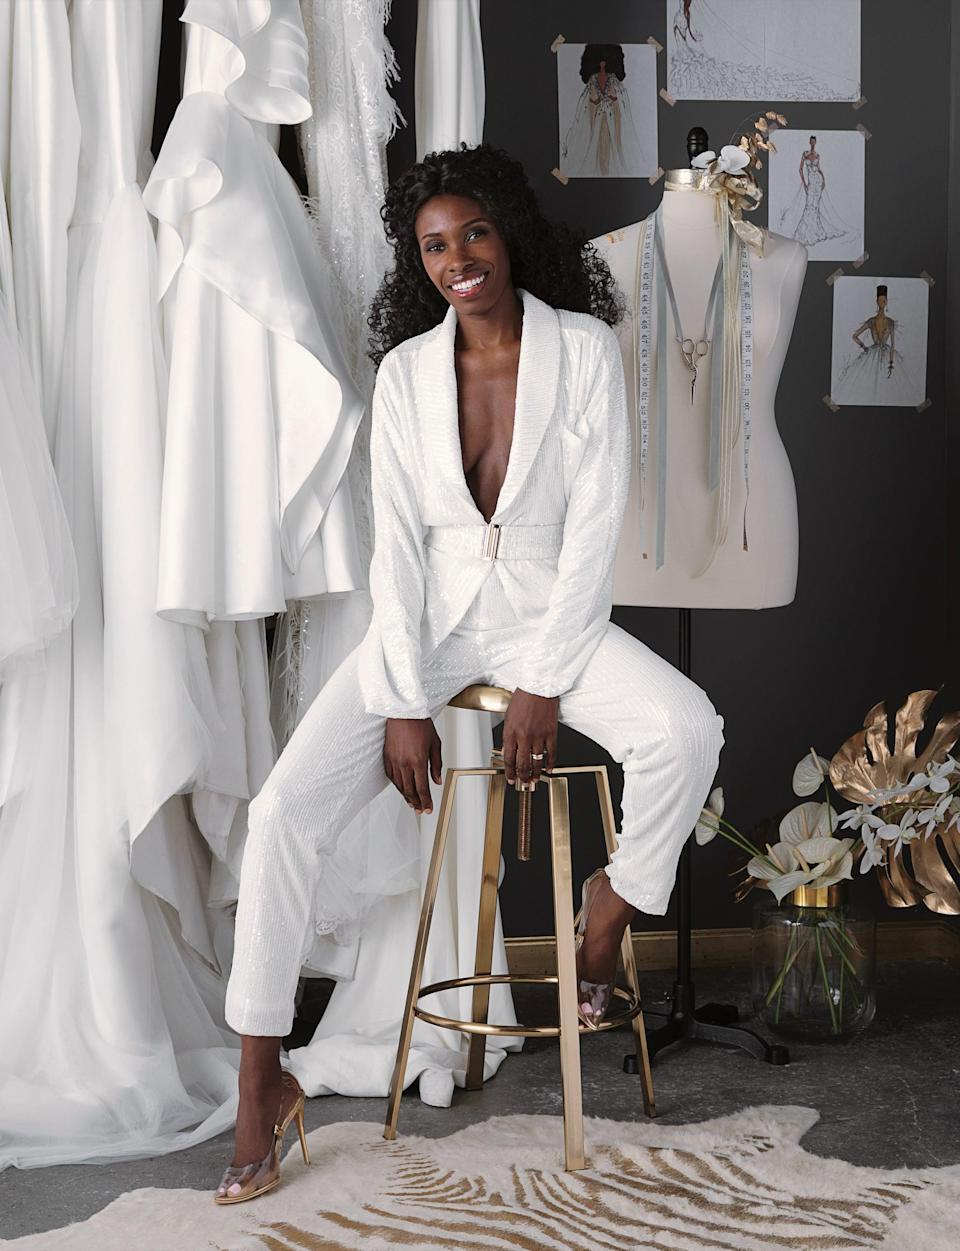 """<ul> <li><strong>On designing dresses <em>and</em> opening a bridal salon:</strong> """"I knew that in order to sell <a class=""""link rapid-noclick-resp"""" href=""""https://www.popsugar.com/Wedding"""" rel=""""nofollow noopener"""" target=""""_blank"""" data-ylk=""""slk:wedding"""">wedding</a> dresses, I had to be my own seller. So I opened the store in 2013. And we continued to go to New York bridal market and attempt to pick up retailers, but it wasn't that easy. A lot of retailers were playing the comparison game like, 'Oh, you're the Black Vera Wang.' And I was like, 'I'm just Andrea. We don't have to turn me into someone else so it's more palatable for you.'""""</li> <li><strong>On her journey to success: </strong>""""So it started off as a 400-square-foot boutique and we opened up an extension store across the street, because it was the closest thing that had more space. Then we realized that it was not ideal for us to be bouncing back and forth from one space to the next. Then our first retailer picked us up, and we realized we were expanding fairly fast. So about three years ago, we moved to Nostrand Avenue, which is about a 3,000-square-foot space. Our team has tripled in size, and we're now sold at four retailers and were recently picked up by Kleinfeld. I'm really excited about that. They're pros and have been really, really supportive.""""</li> </ul>"""